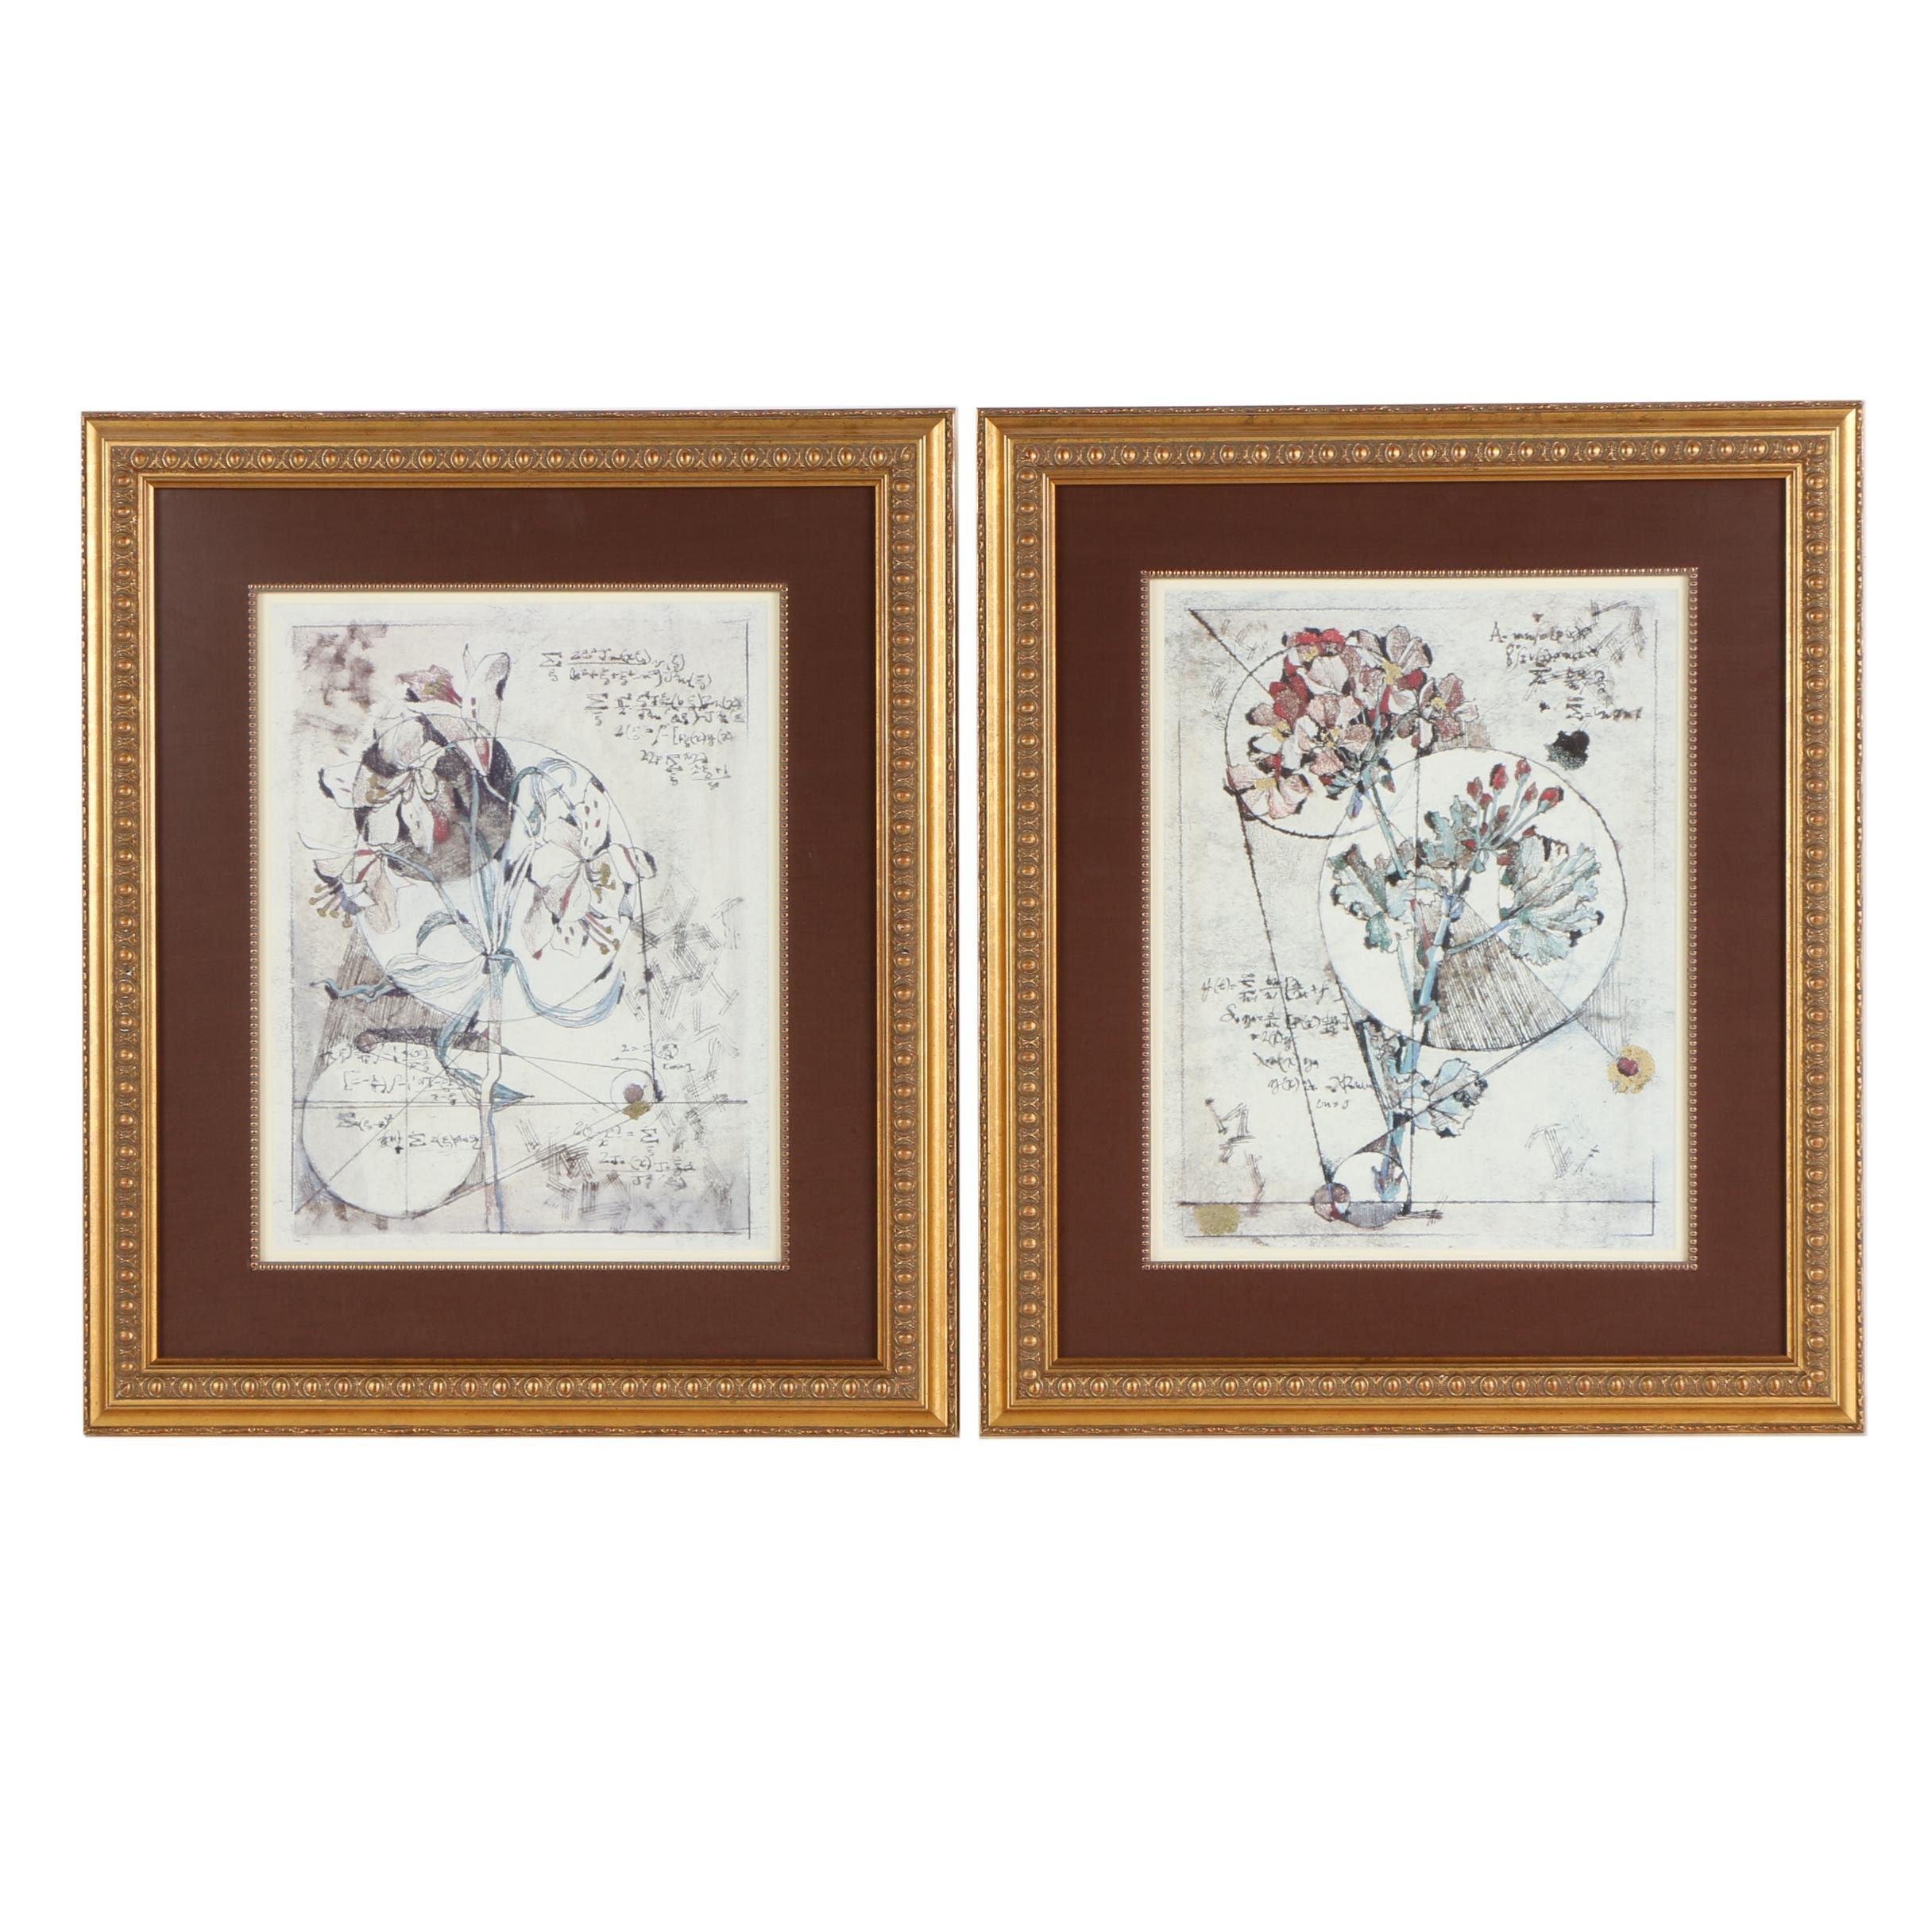 Pair Of Embellished Offset Lithograph Prints